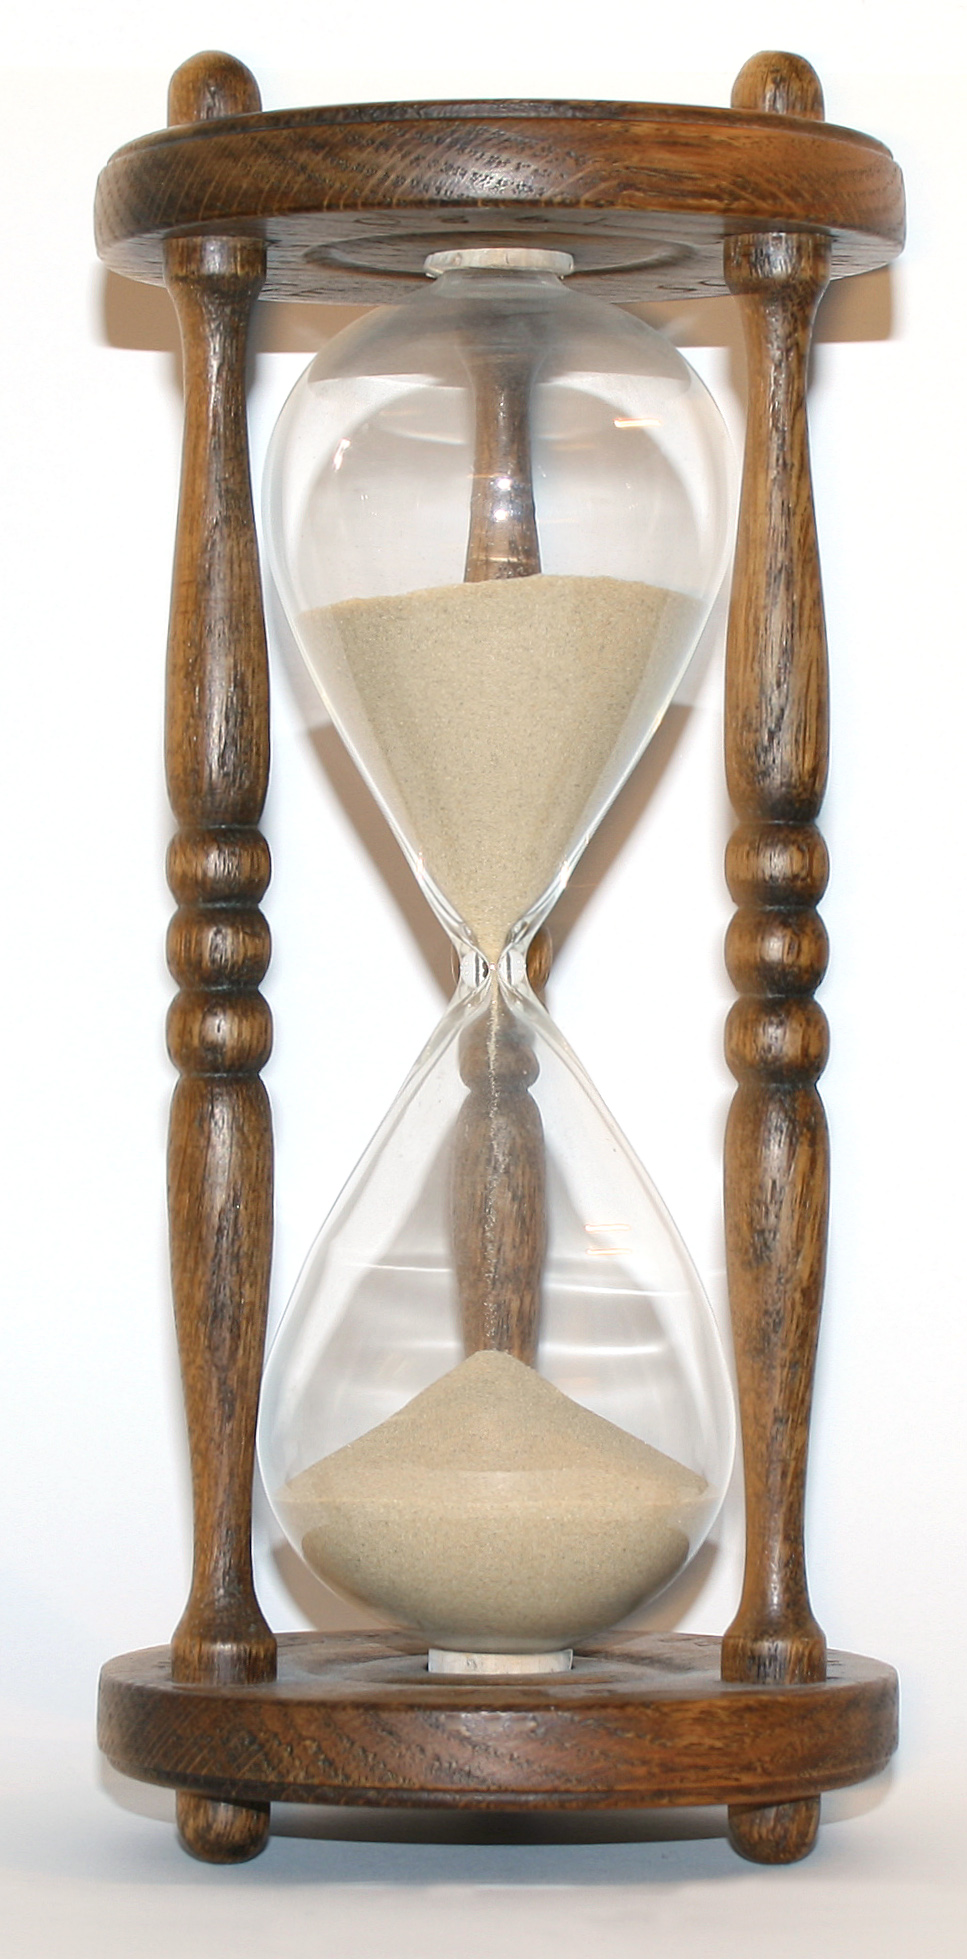 File:Wooden hourglass 3.jpg - Wikipedia, the free encyclopedia